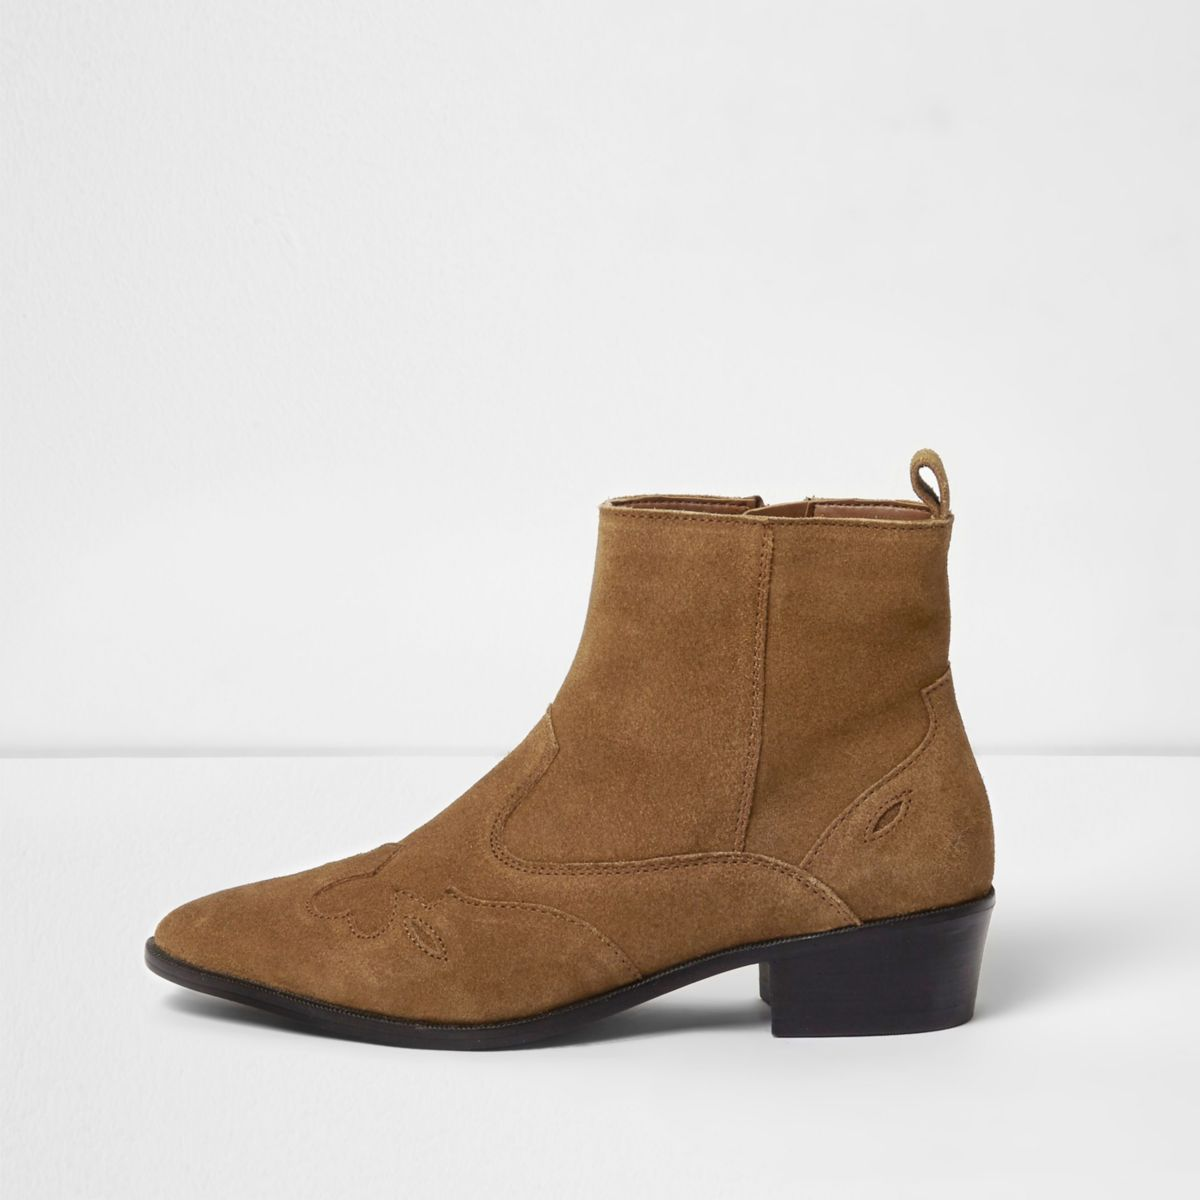 Tan suede western ankle boots